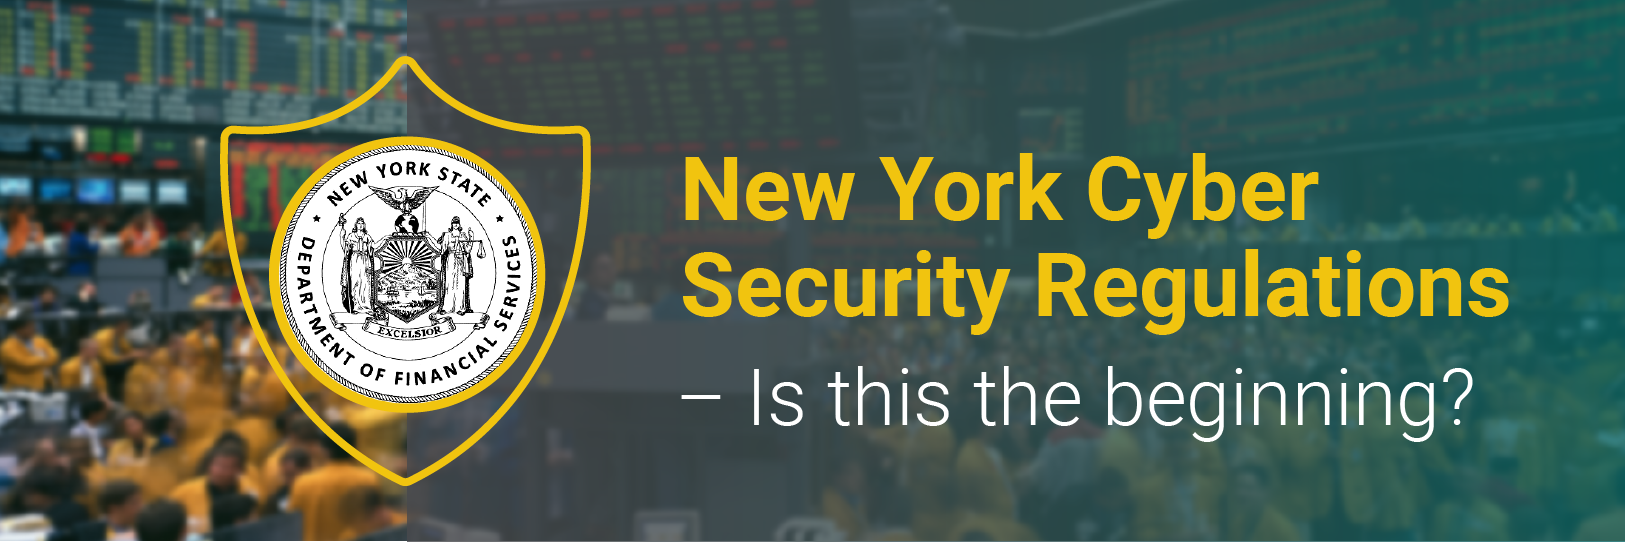 New York Cyber Security Regulations: Is this the beginning?